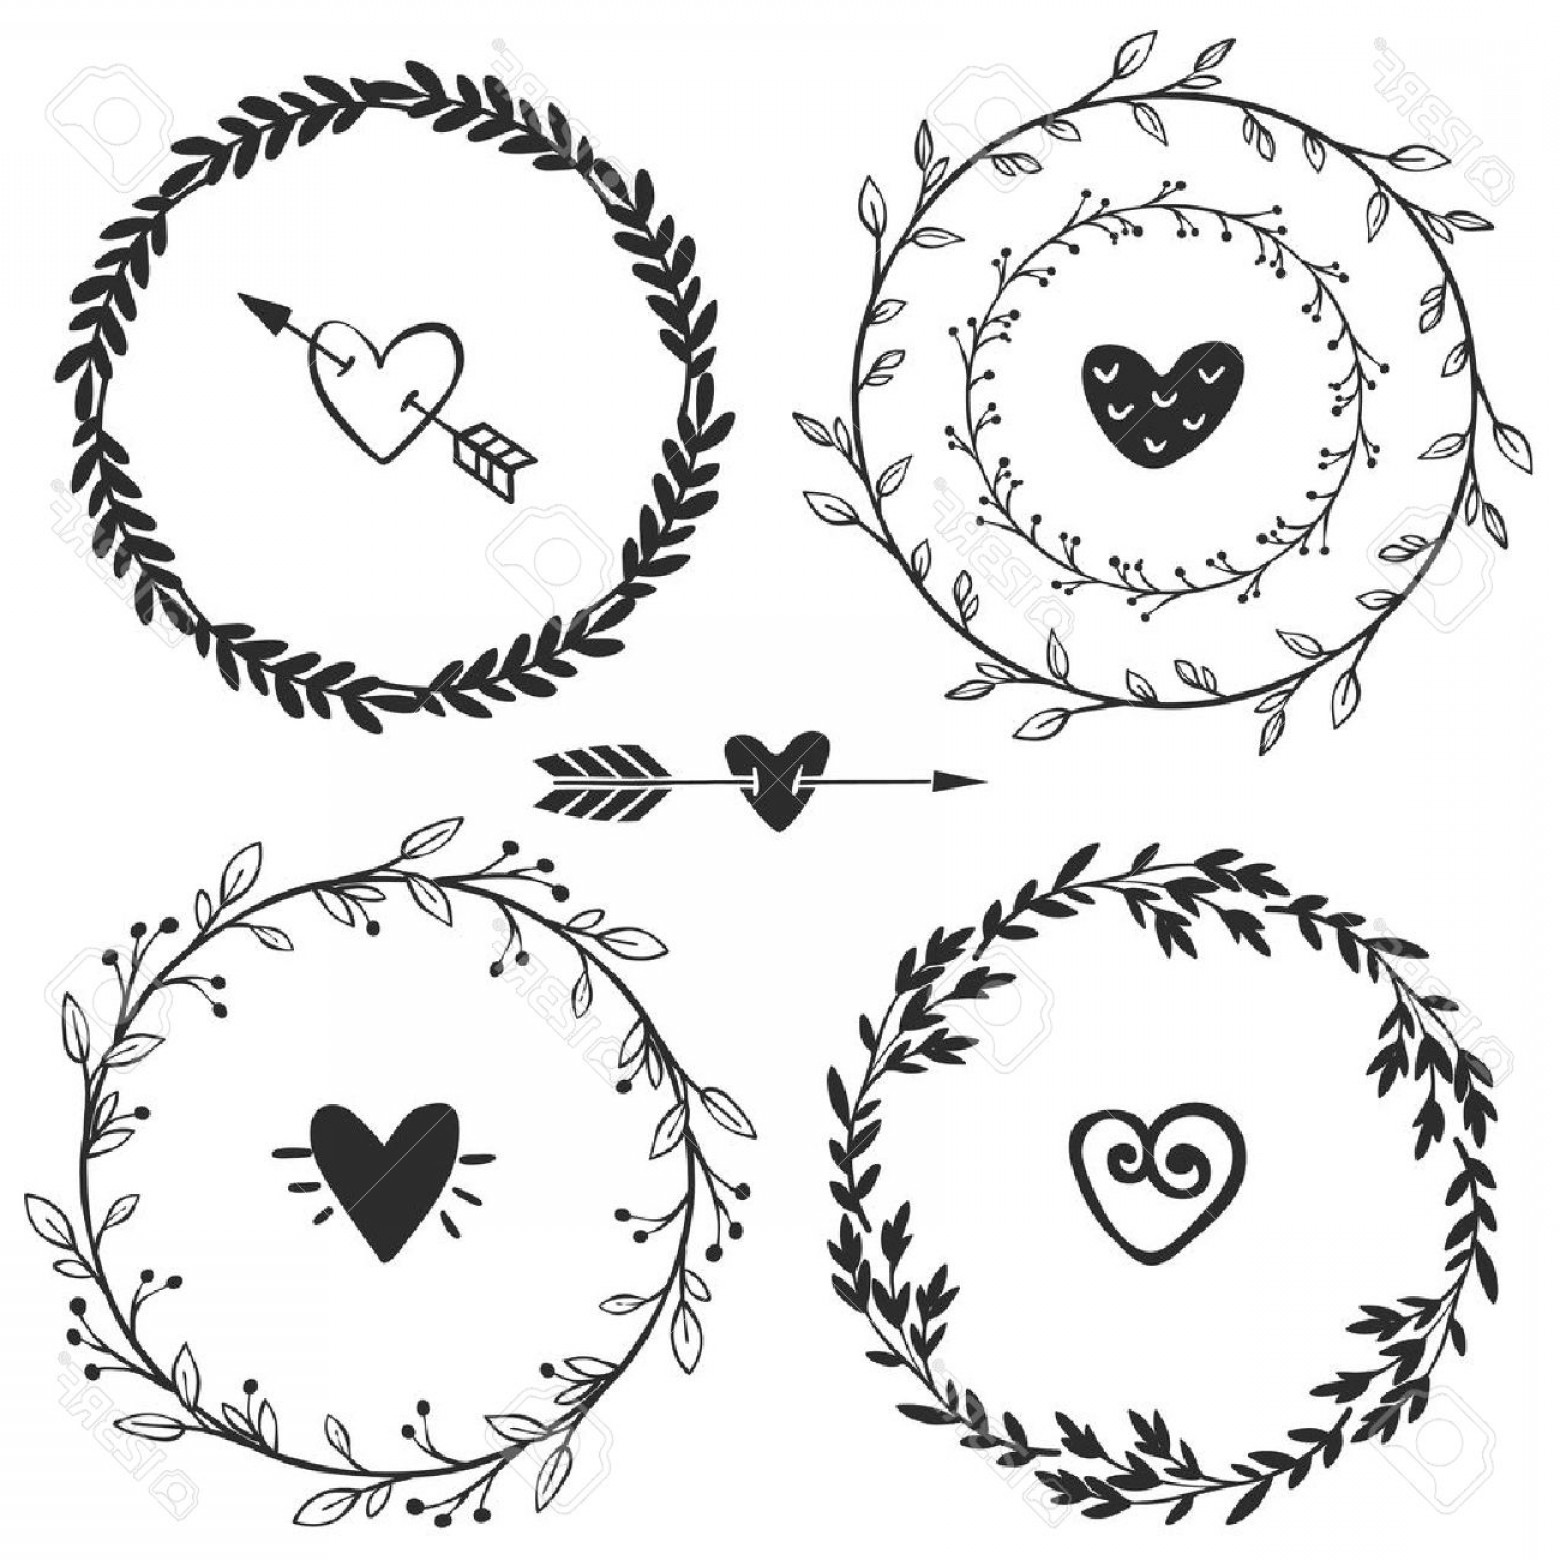 Rustic Heart Vectors: Photostock Vector Hand Drawn Rustic Vintage Wreaths With Hearts Floral Vector Graphic Nature Design Elements